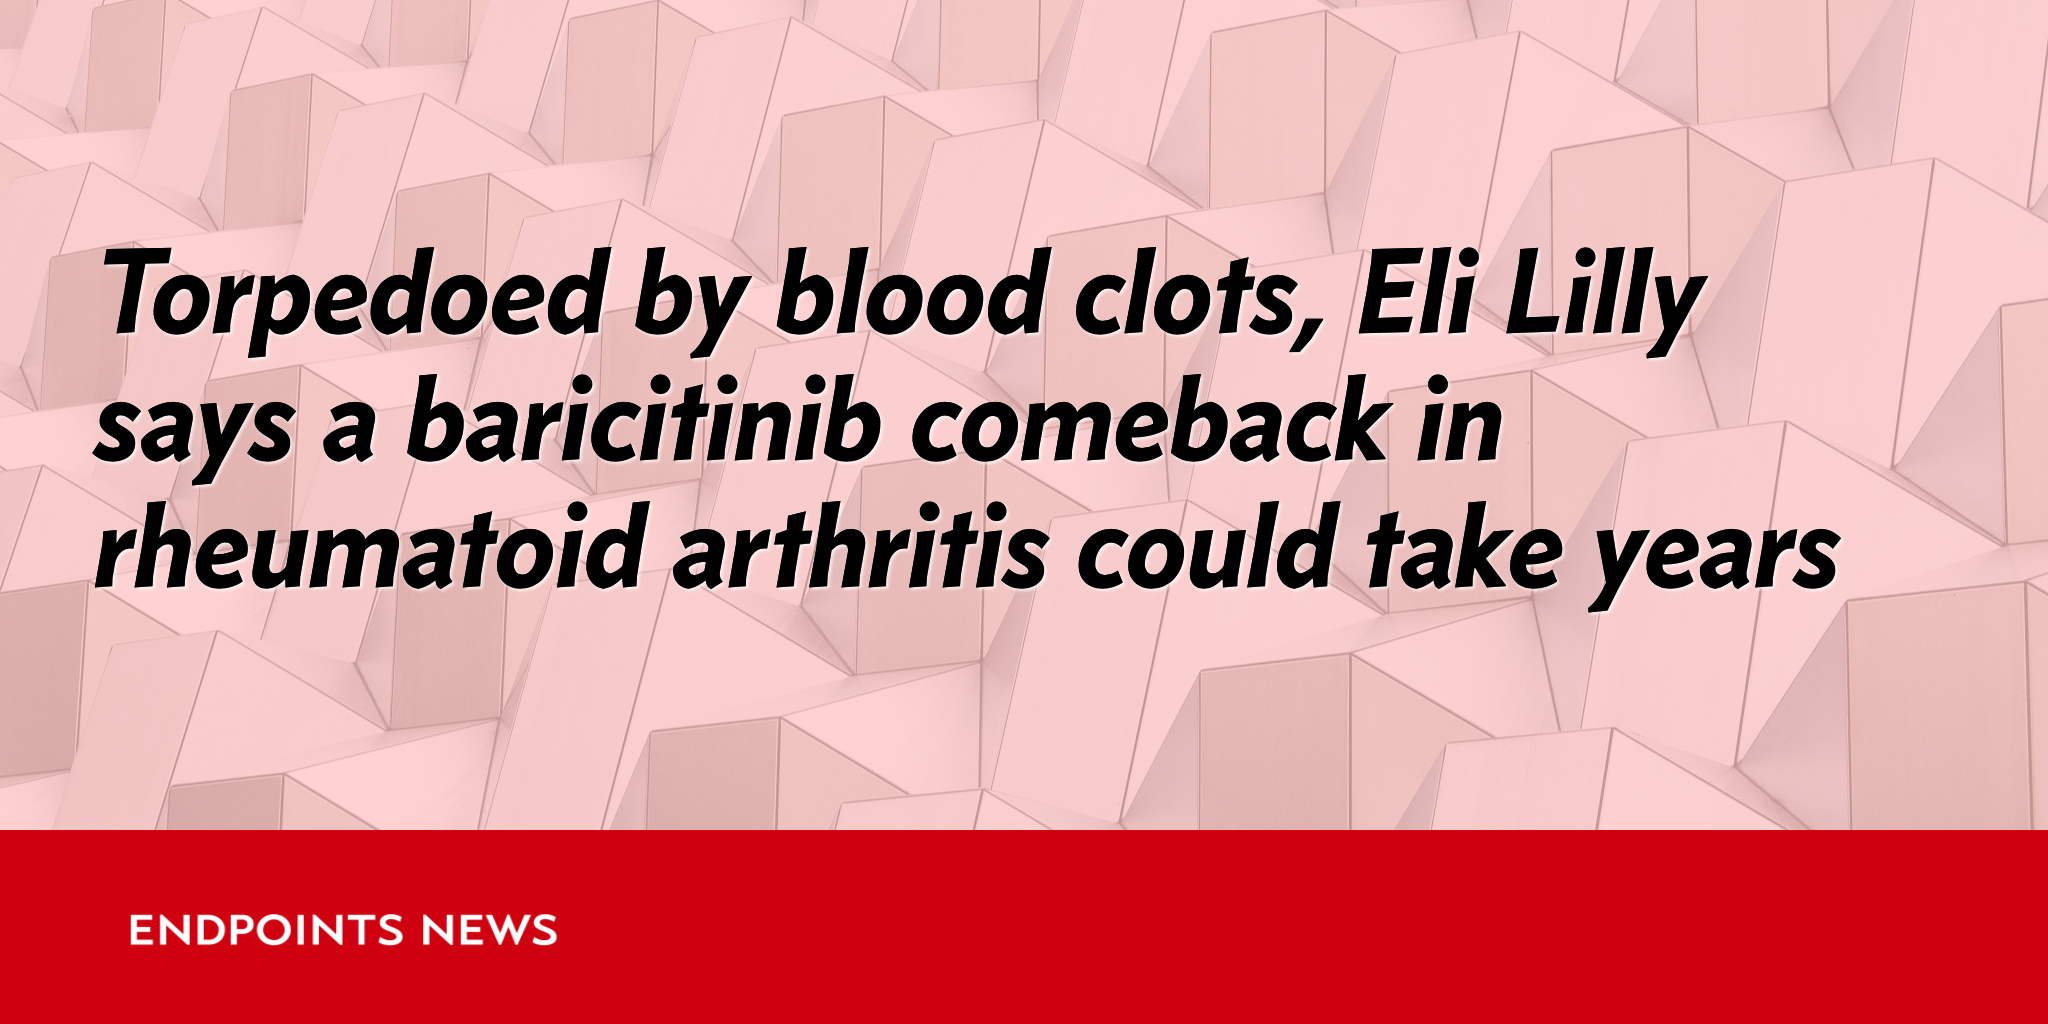 baricitinib rheumatoid arthritis forecast and market In january 2017, eli lilly submitted new drug application with the us fda for rheumatoid-arthritis treatment to commercialize baricitinib in the us market patent expiration of few antirheumatic biologicals will boost the development of biosimilars.